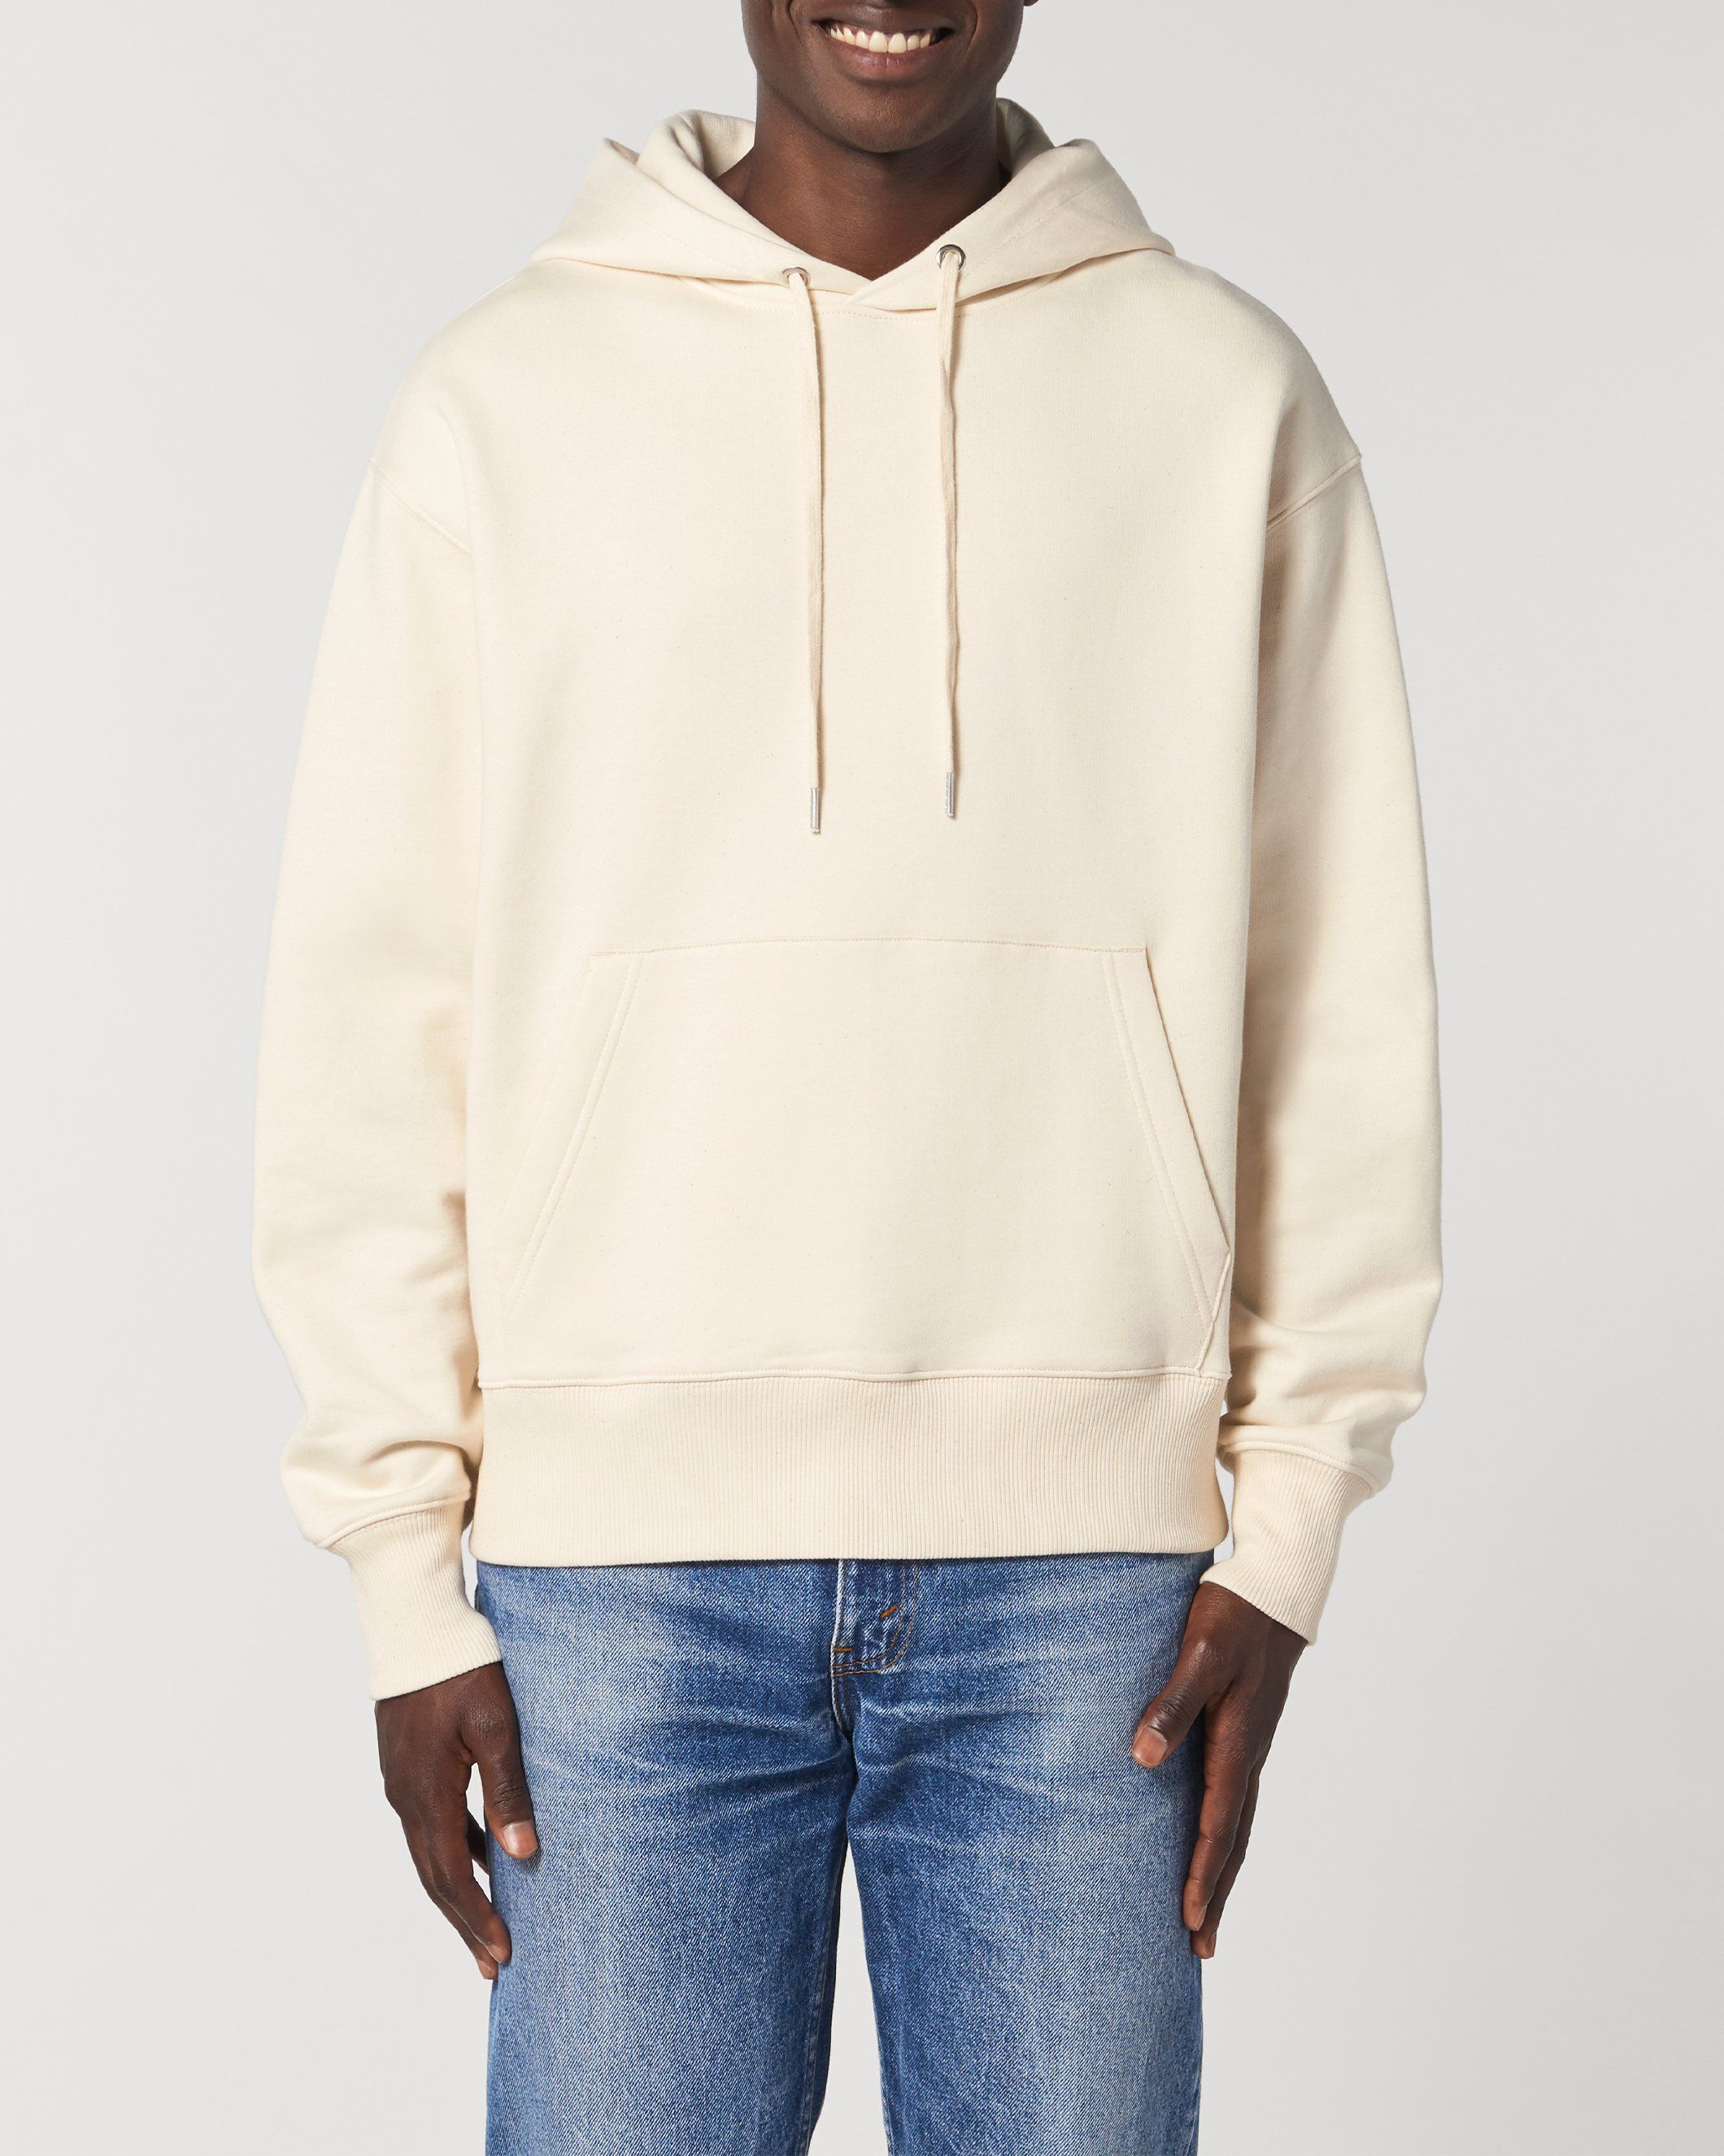 Karma Unisex Relaxed Hoodie in Natural